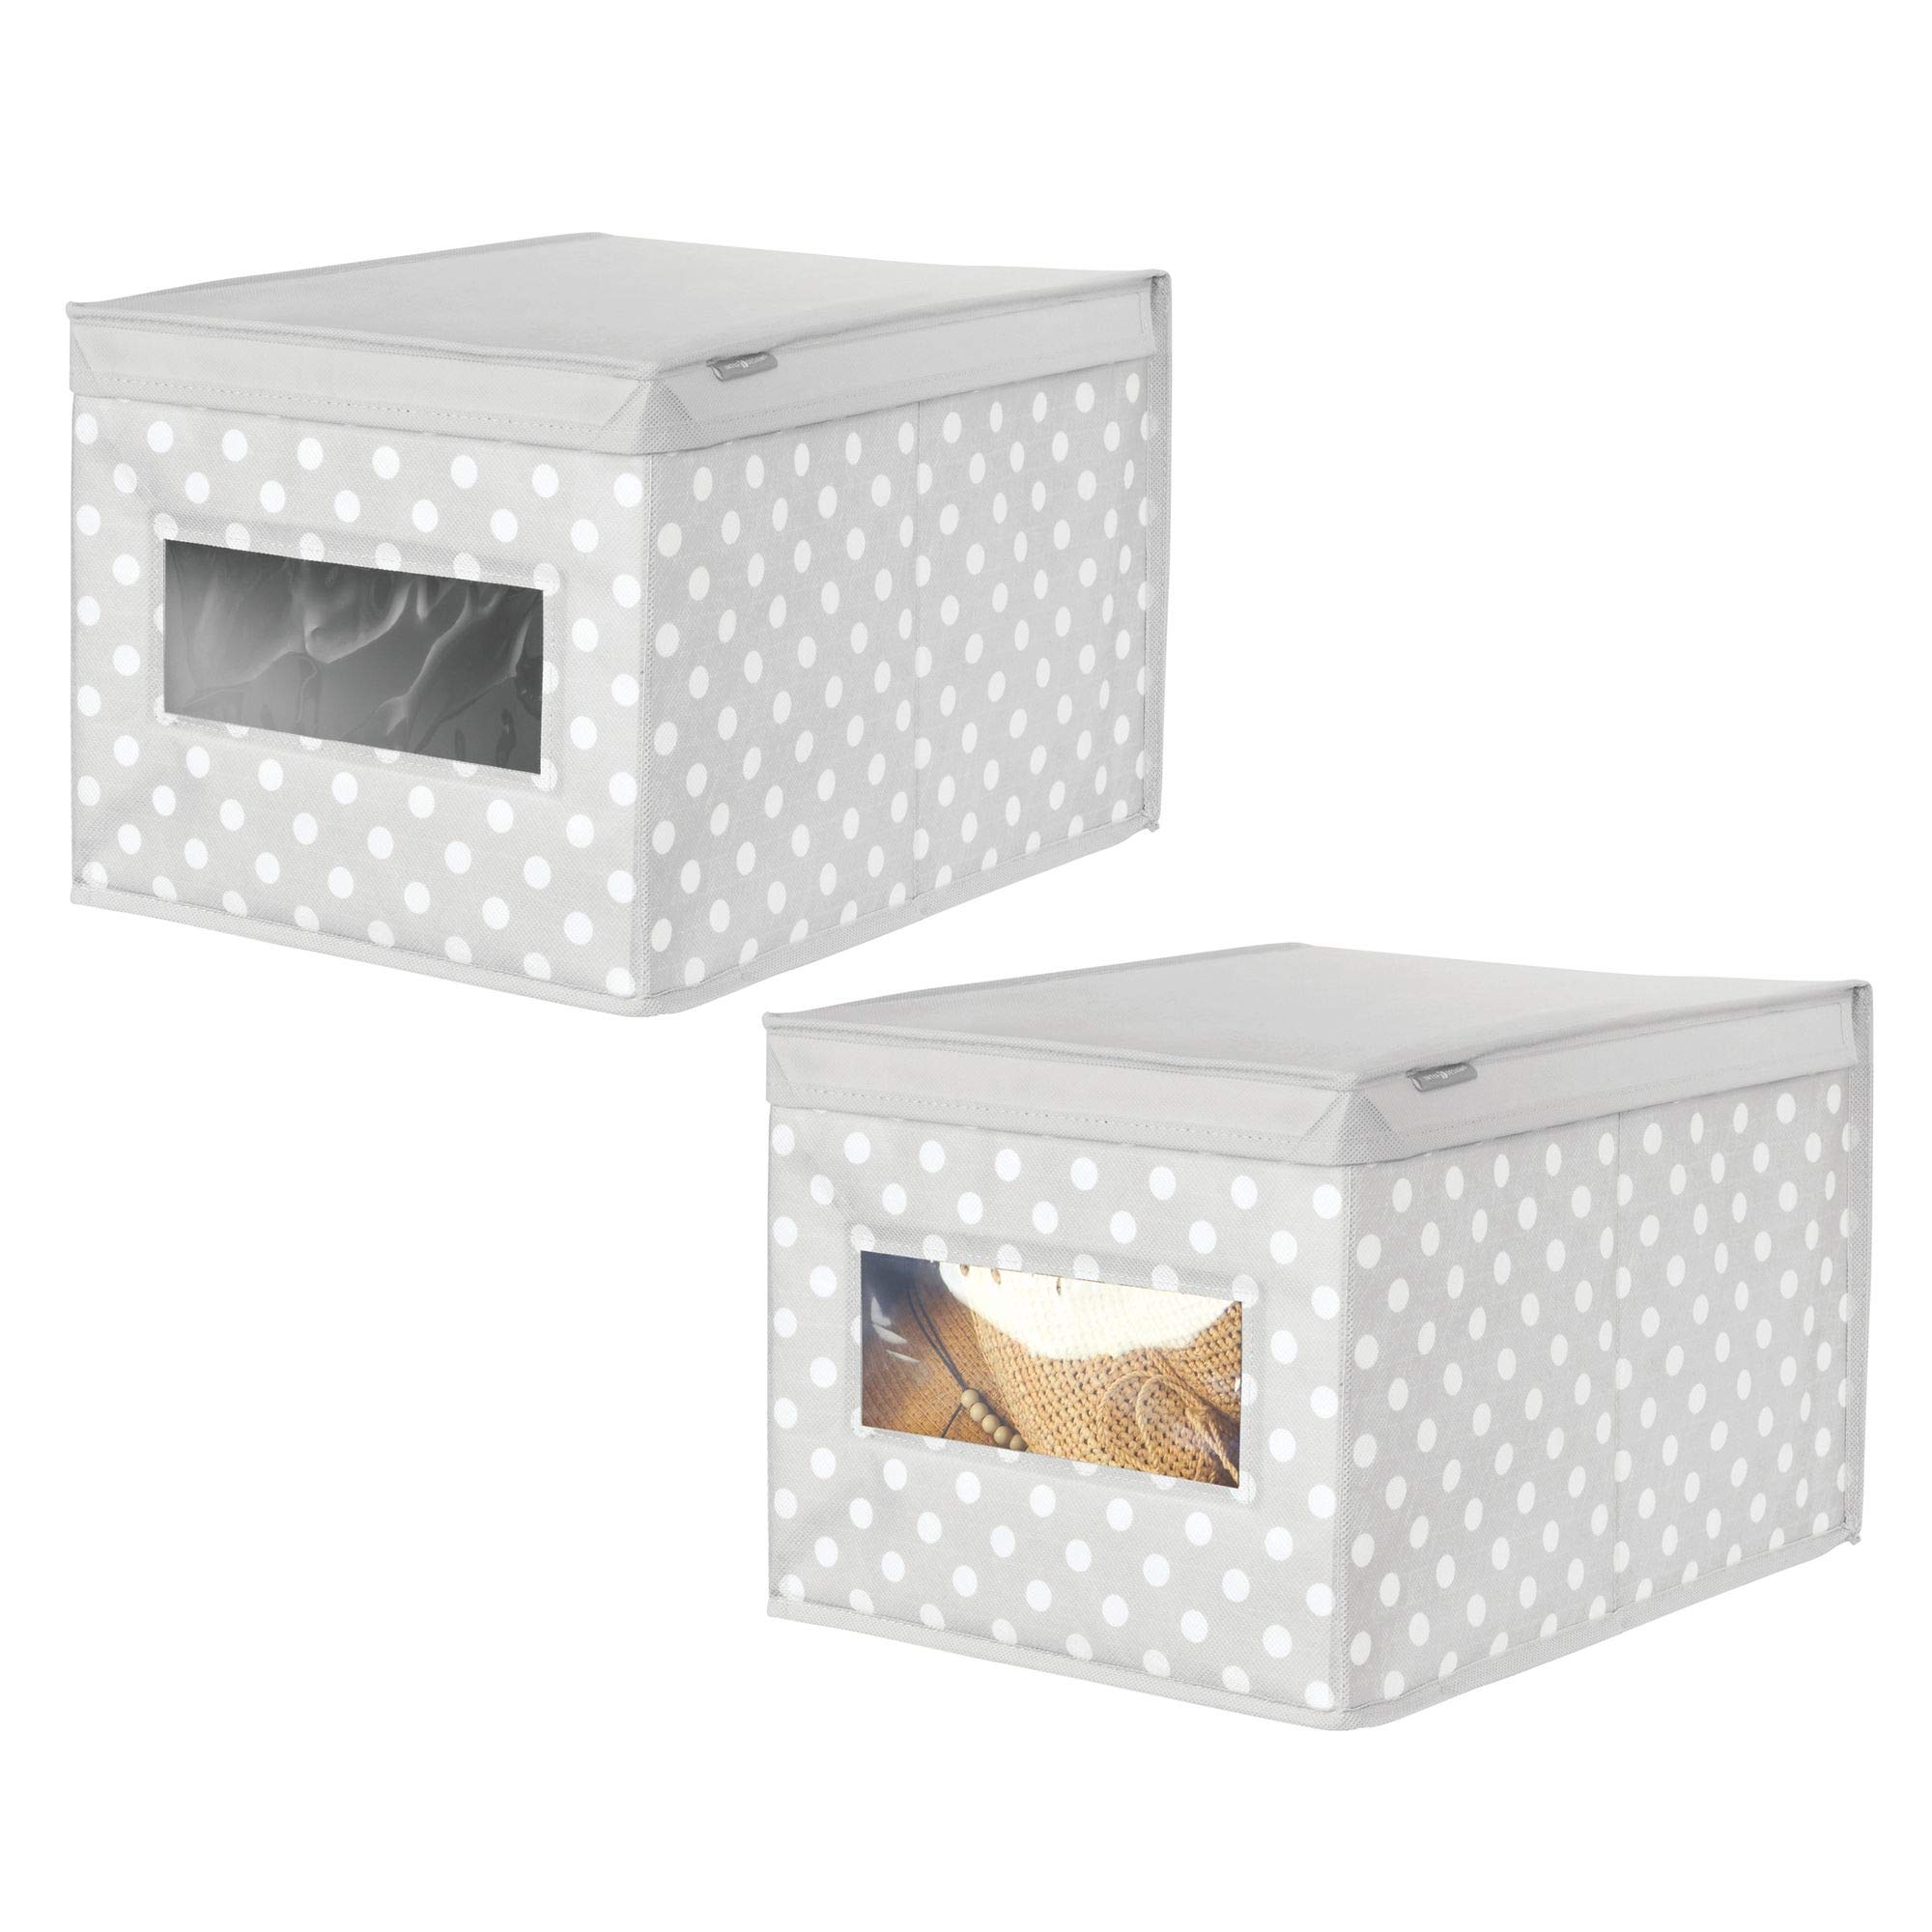 mDesign Soft Stackable Fabric Closet Storage Organizer Holder Box - Clear Window, Attached Hinged Lid, for Child/Kids Room, Nursery - Polka Dot Pattern - Large, Pack of 2, Light Gray with White Dots by mDesign (Image #1)